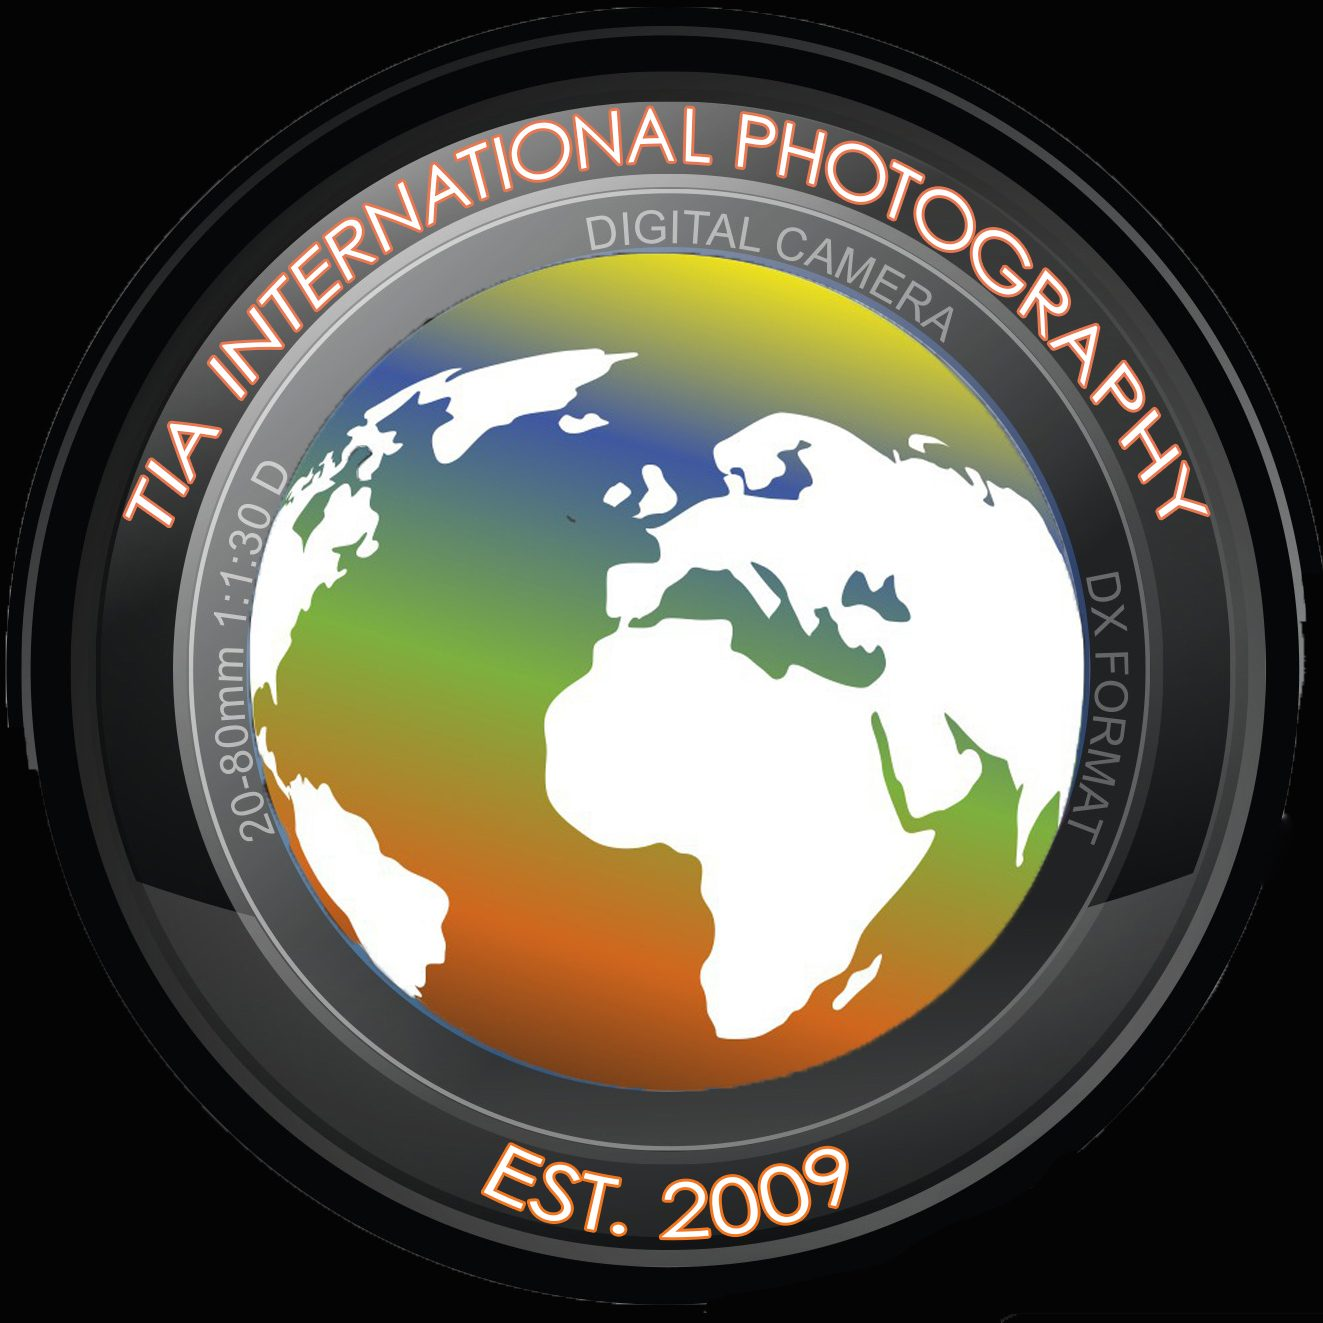 La Vue Atypique – TIA INTERNATIONAL PHOTOGRAPHY'S OFFICIAL BLOG